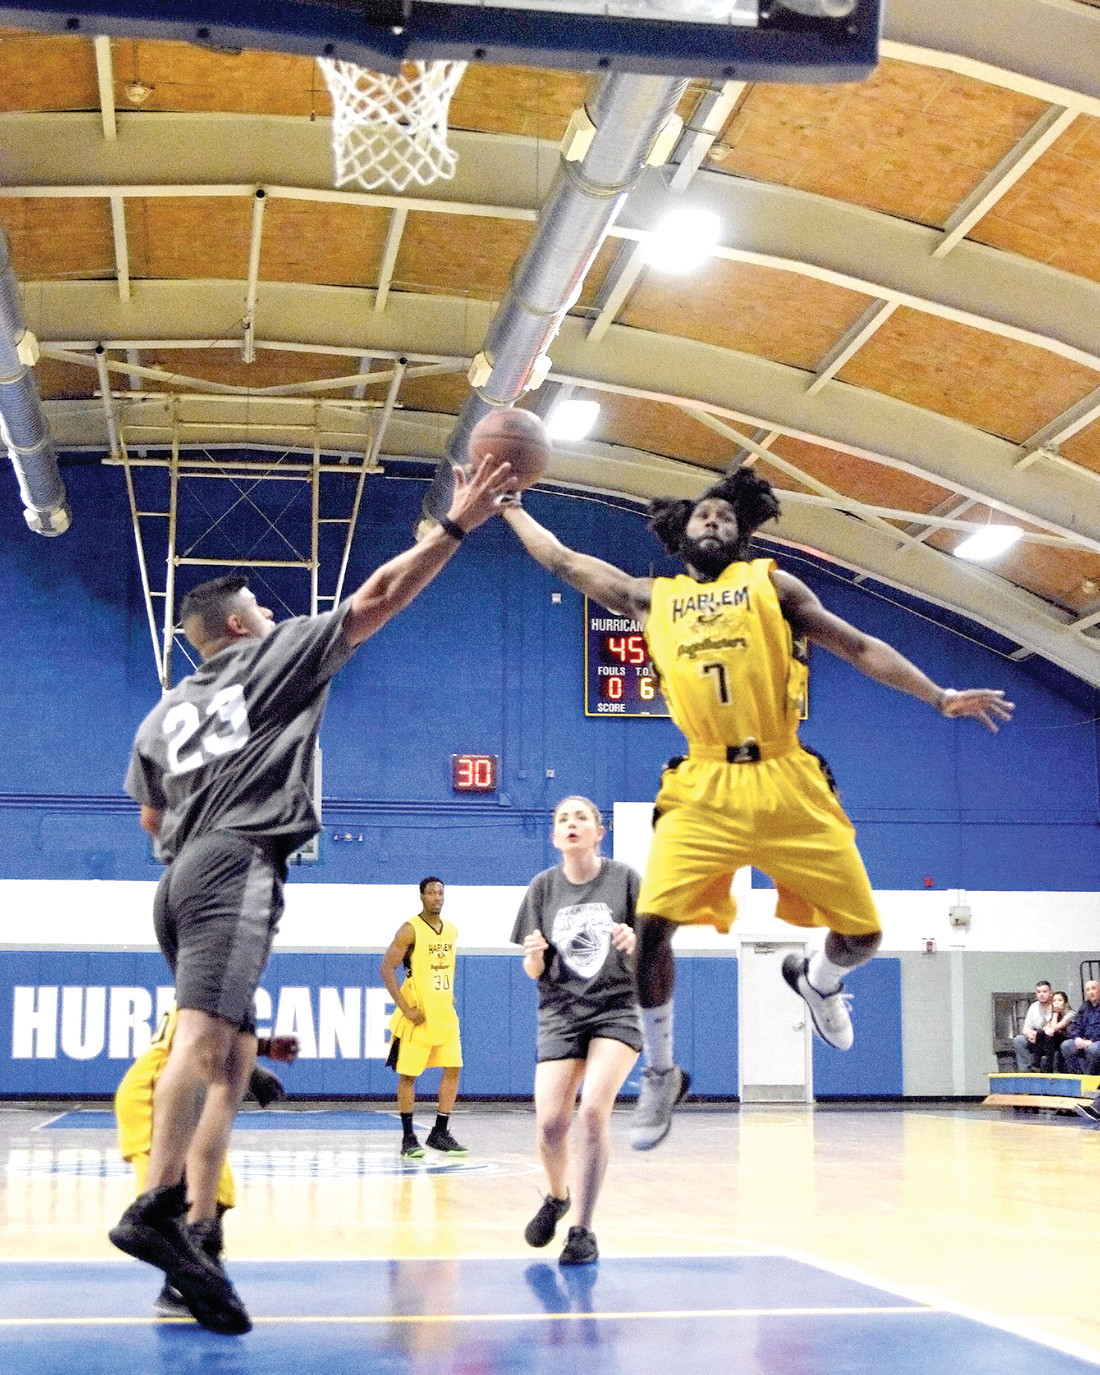 BLAST OFF: Kaseem Williams (number 7) goes up tall for a bucket against a defending Ali Jafaar of the Warwick Police Athletic League (number 23).